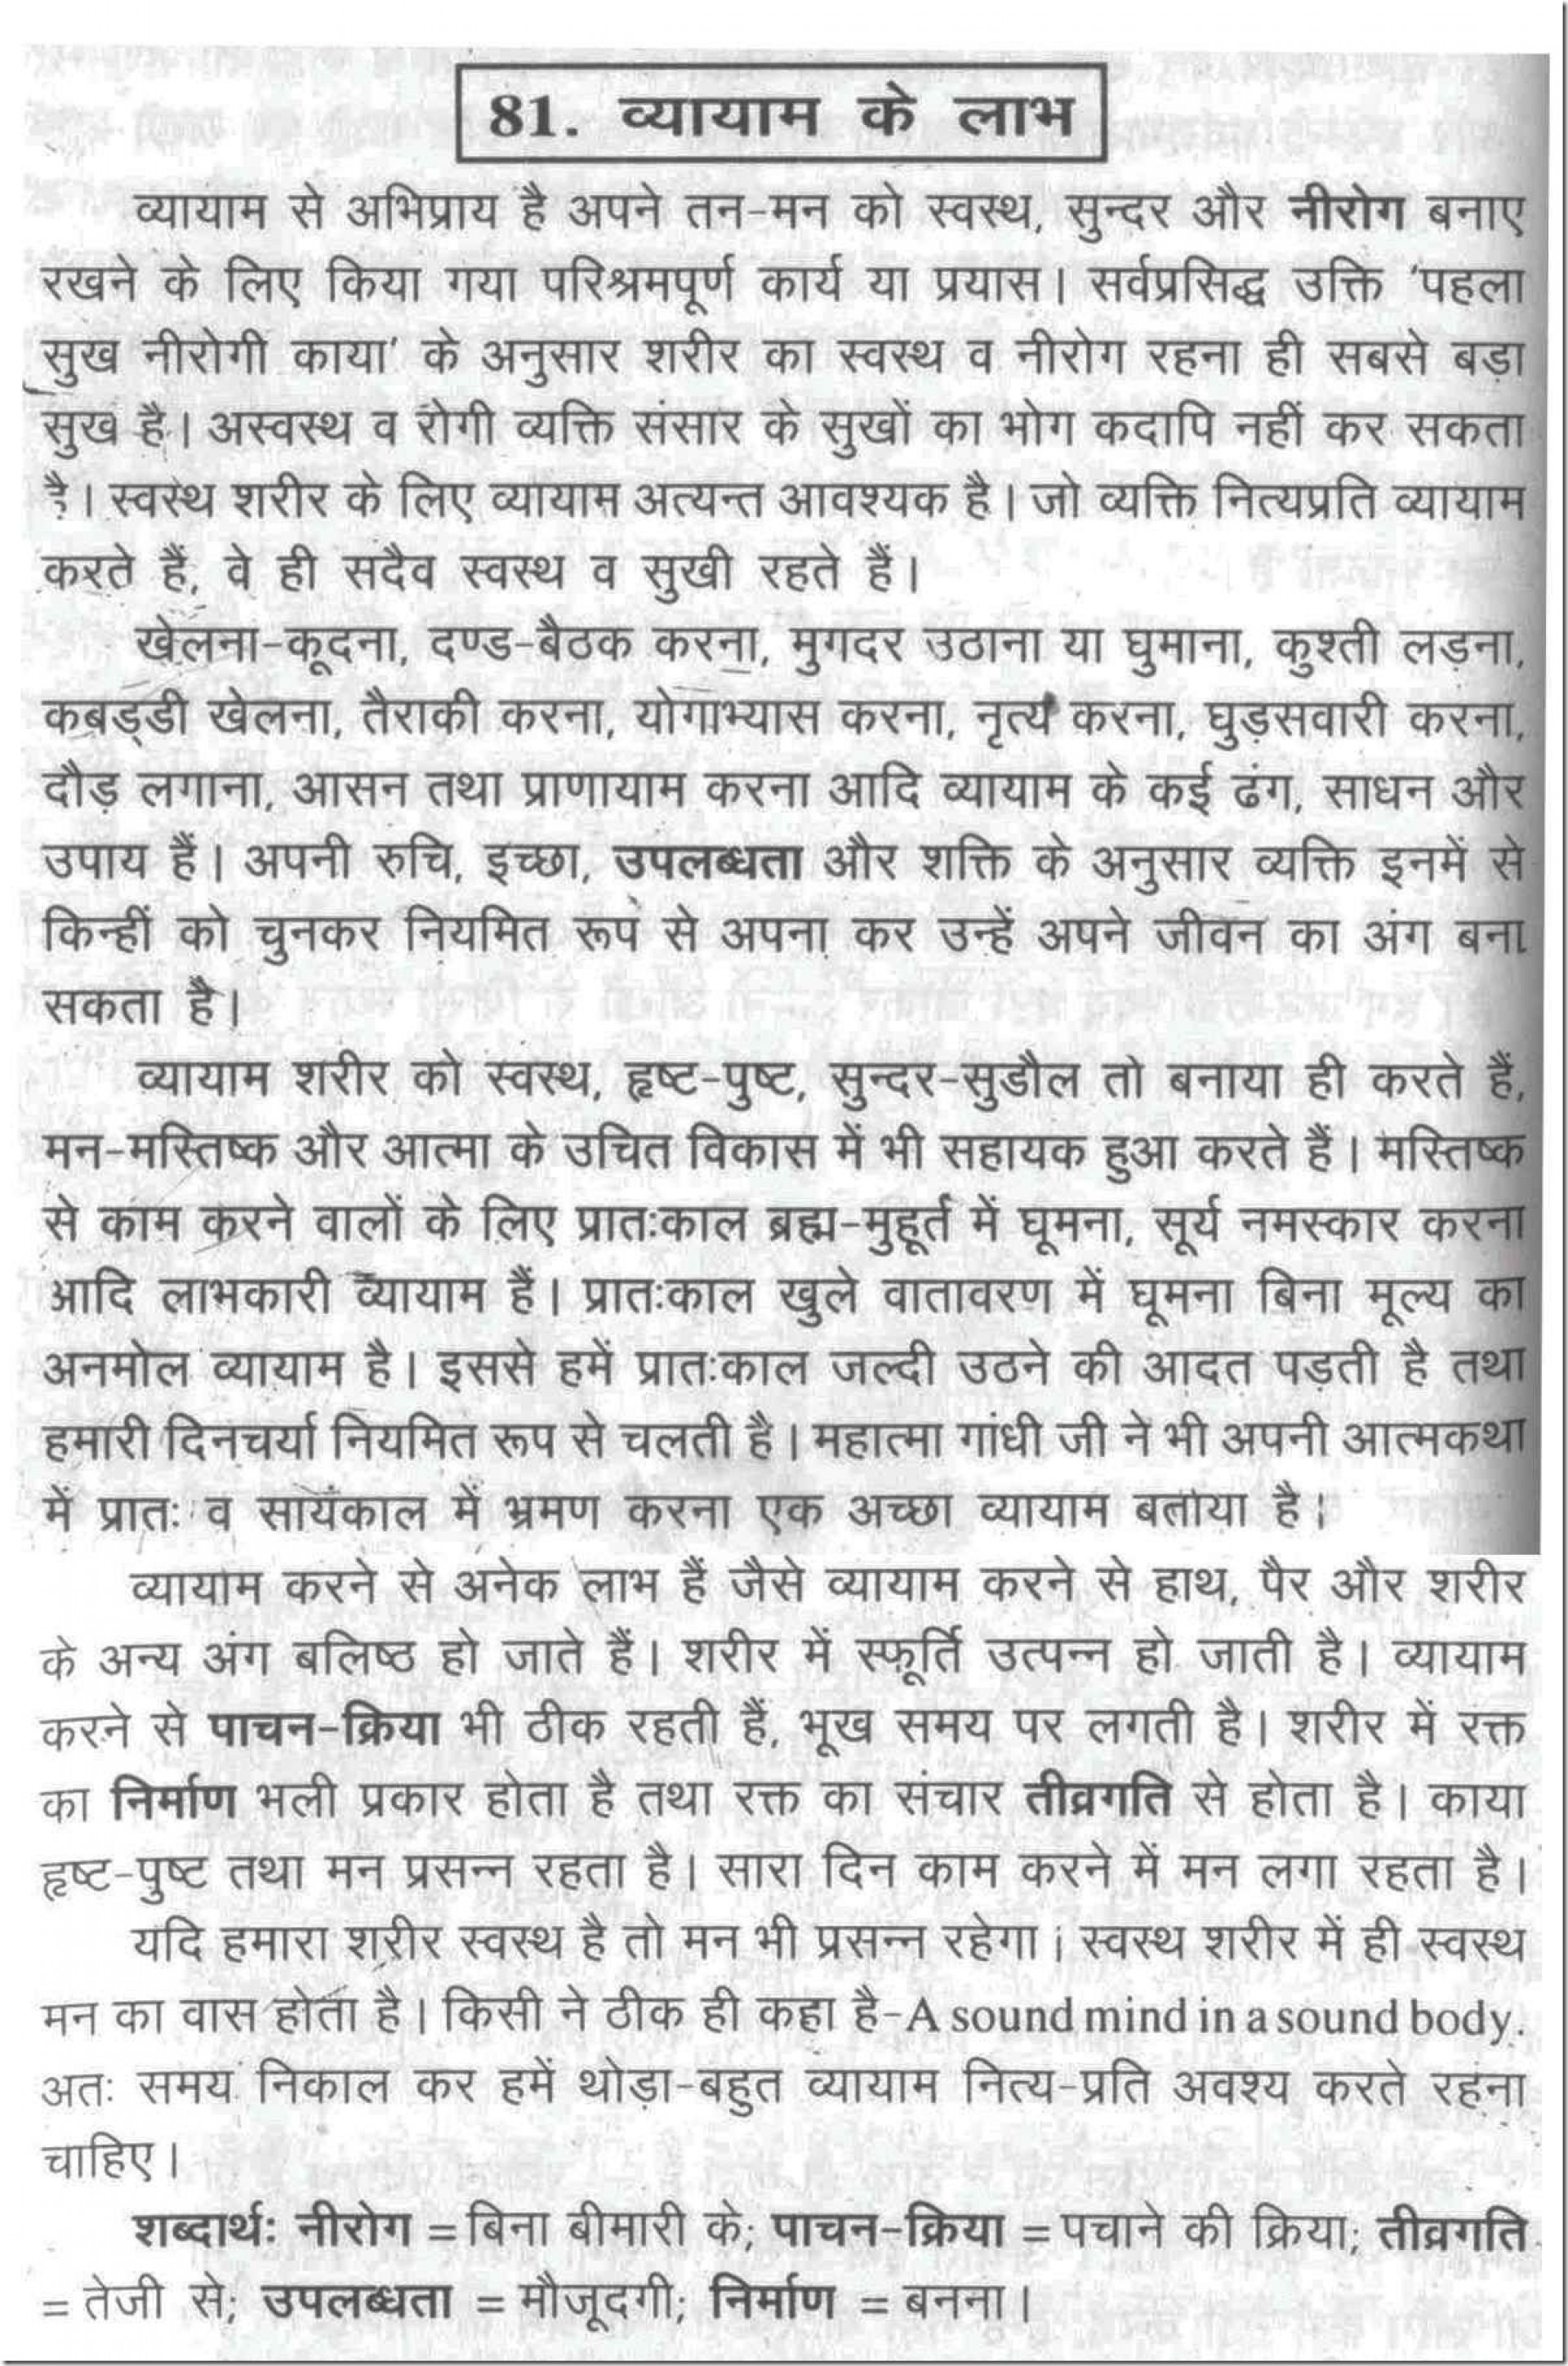 011 2563478896 Essay On Health And Fitness Through Food Good Habits In Hindi Exceptional Habit Eating Bad 1920